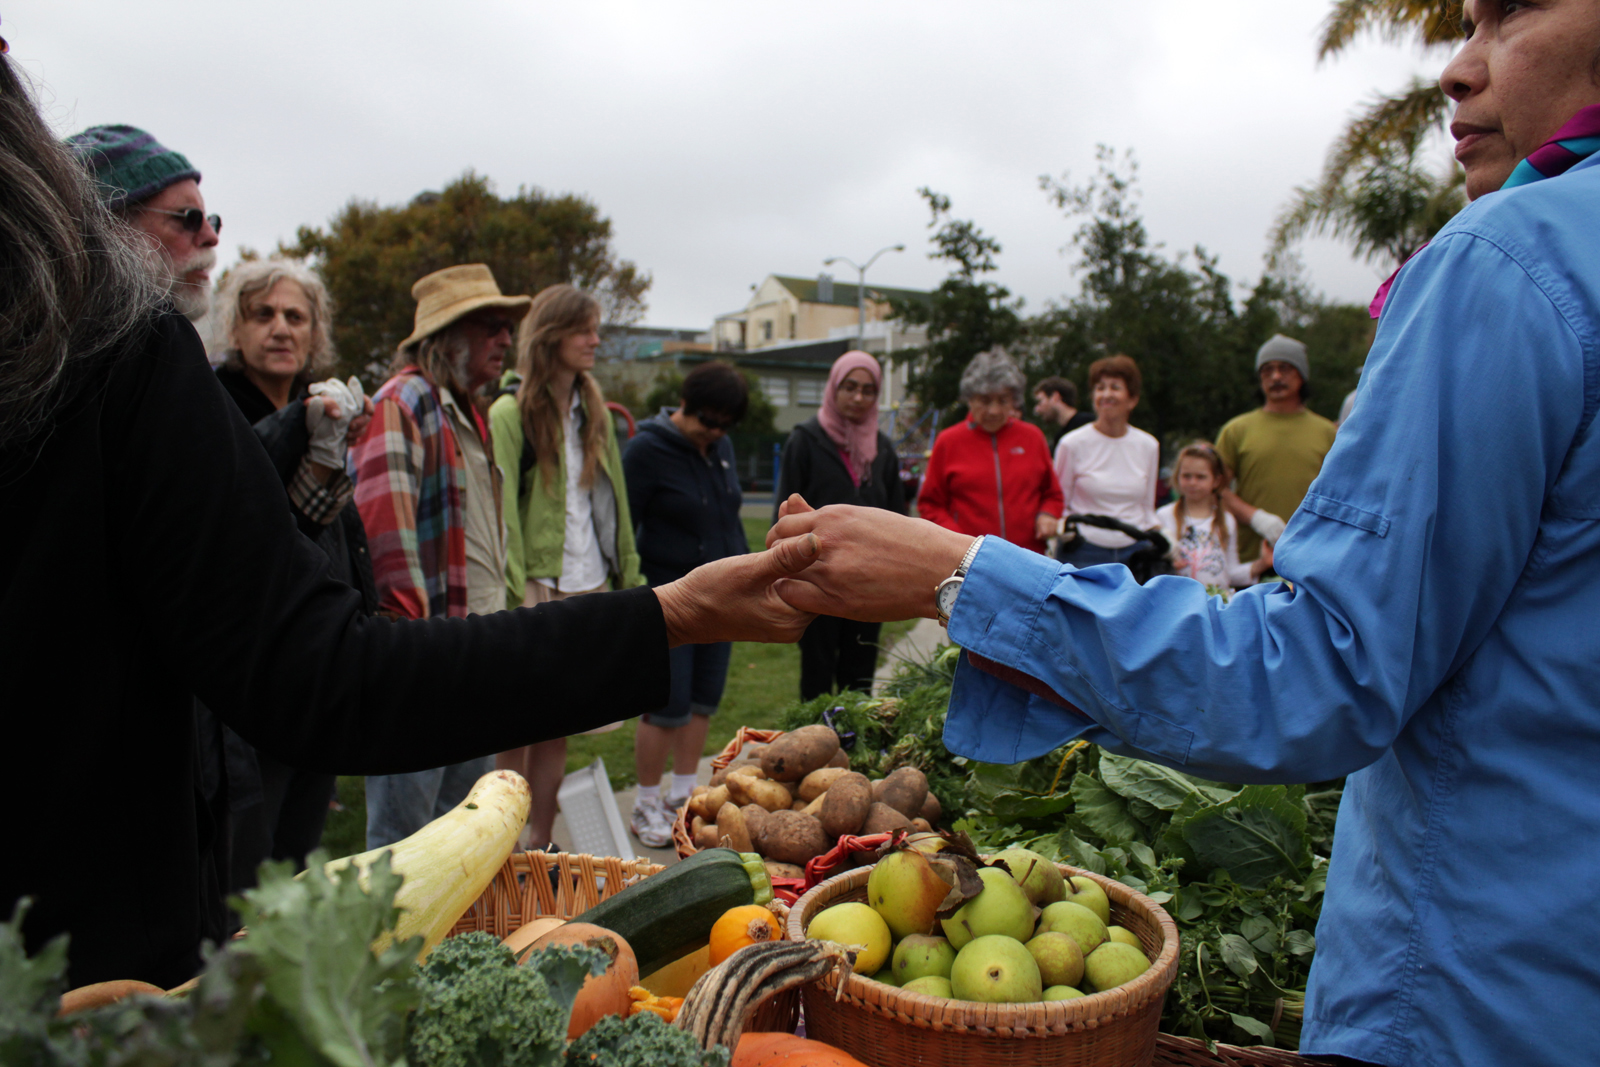 The Free Farm Stand Will Stay, City Says